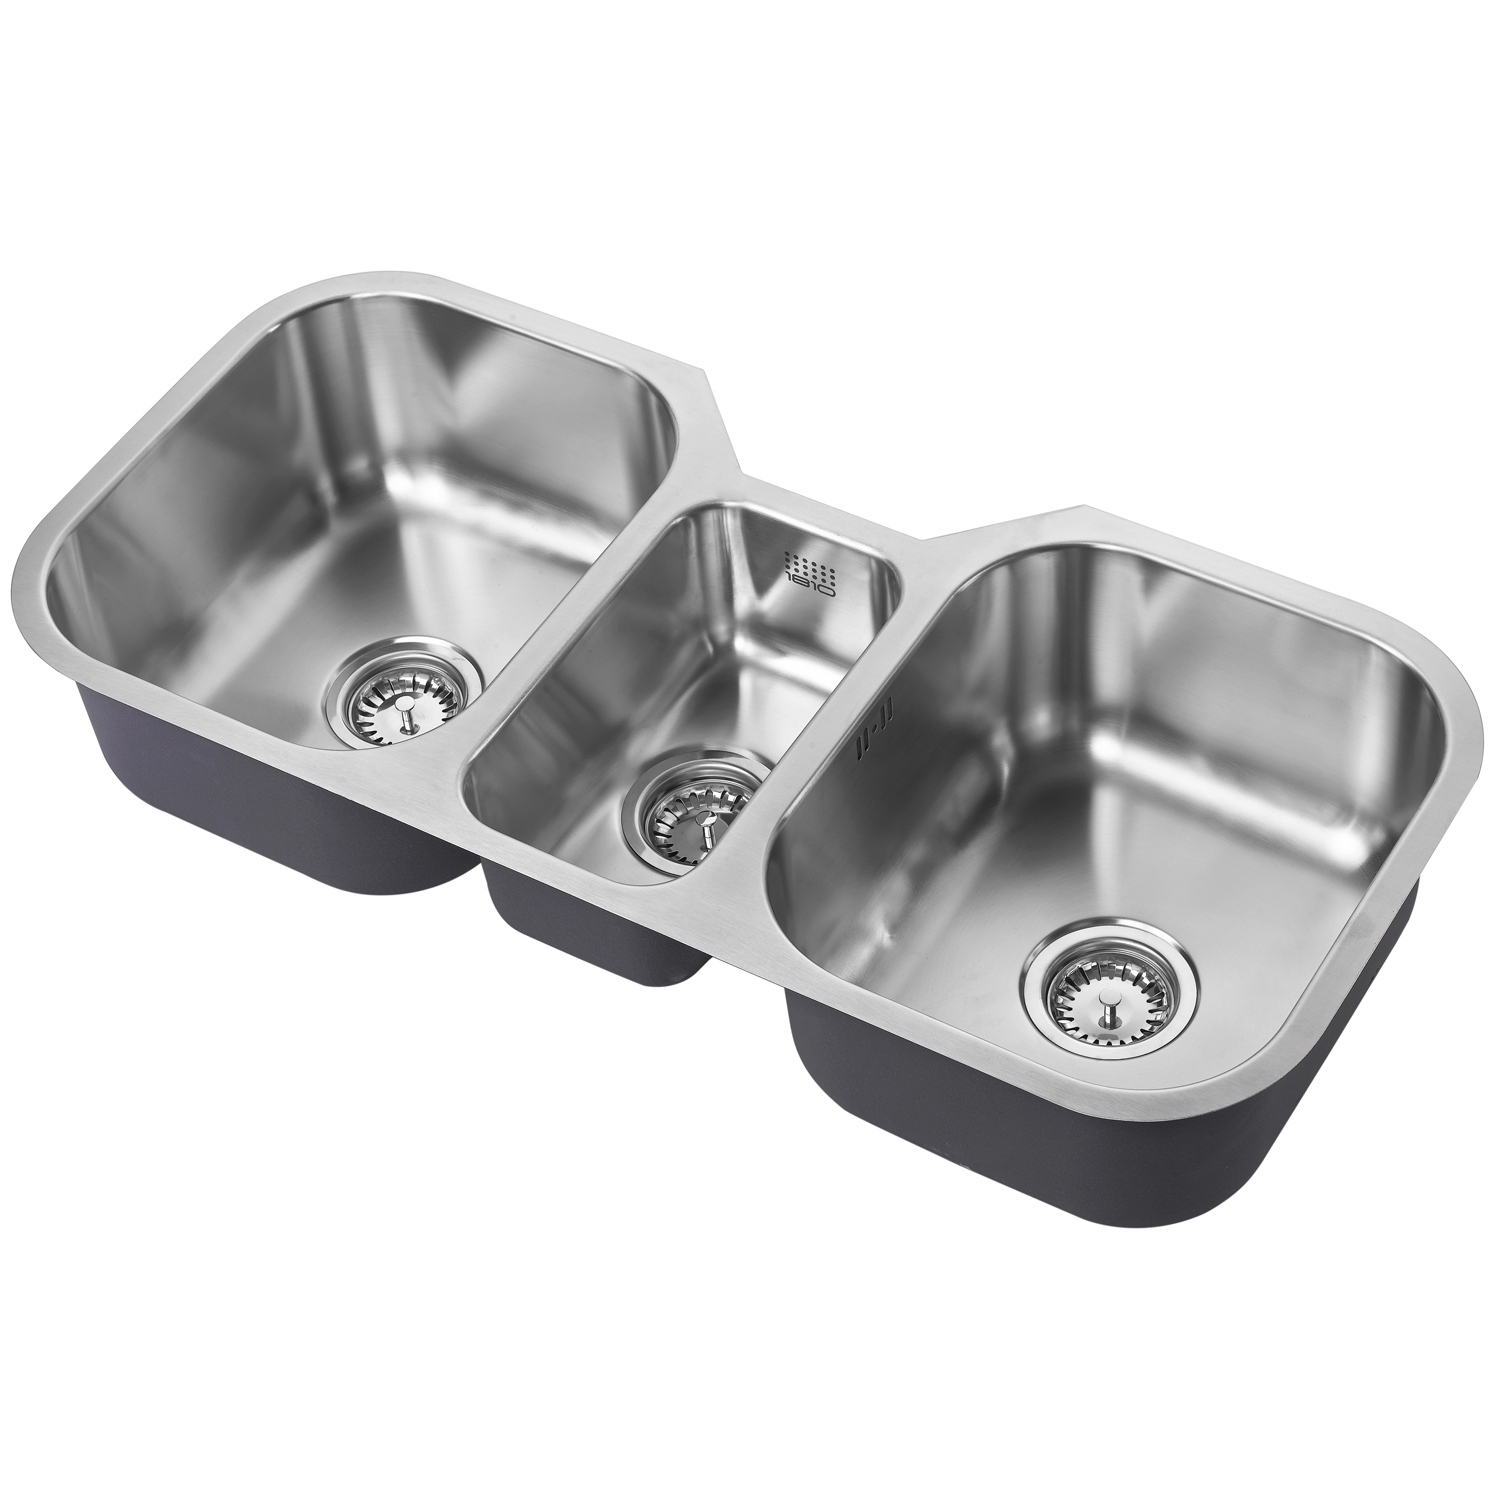 The 1810 Company Etrotrio 960/450U 3.0 Bowl Kitchen Sink - Stainless Steel-0